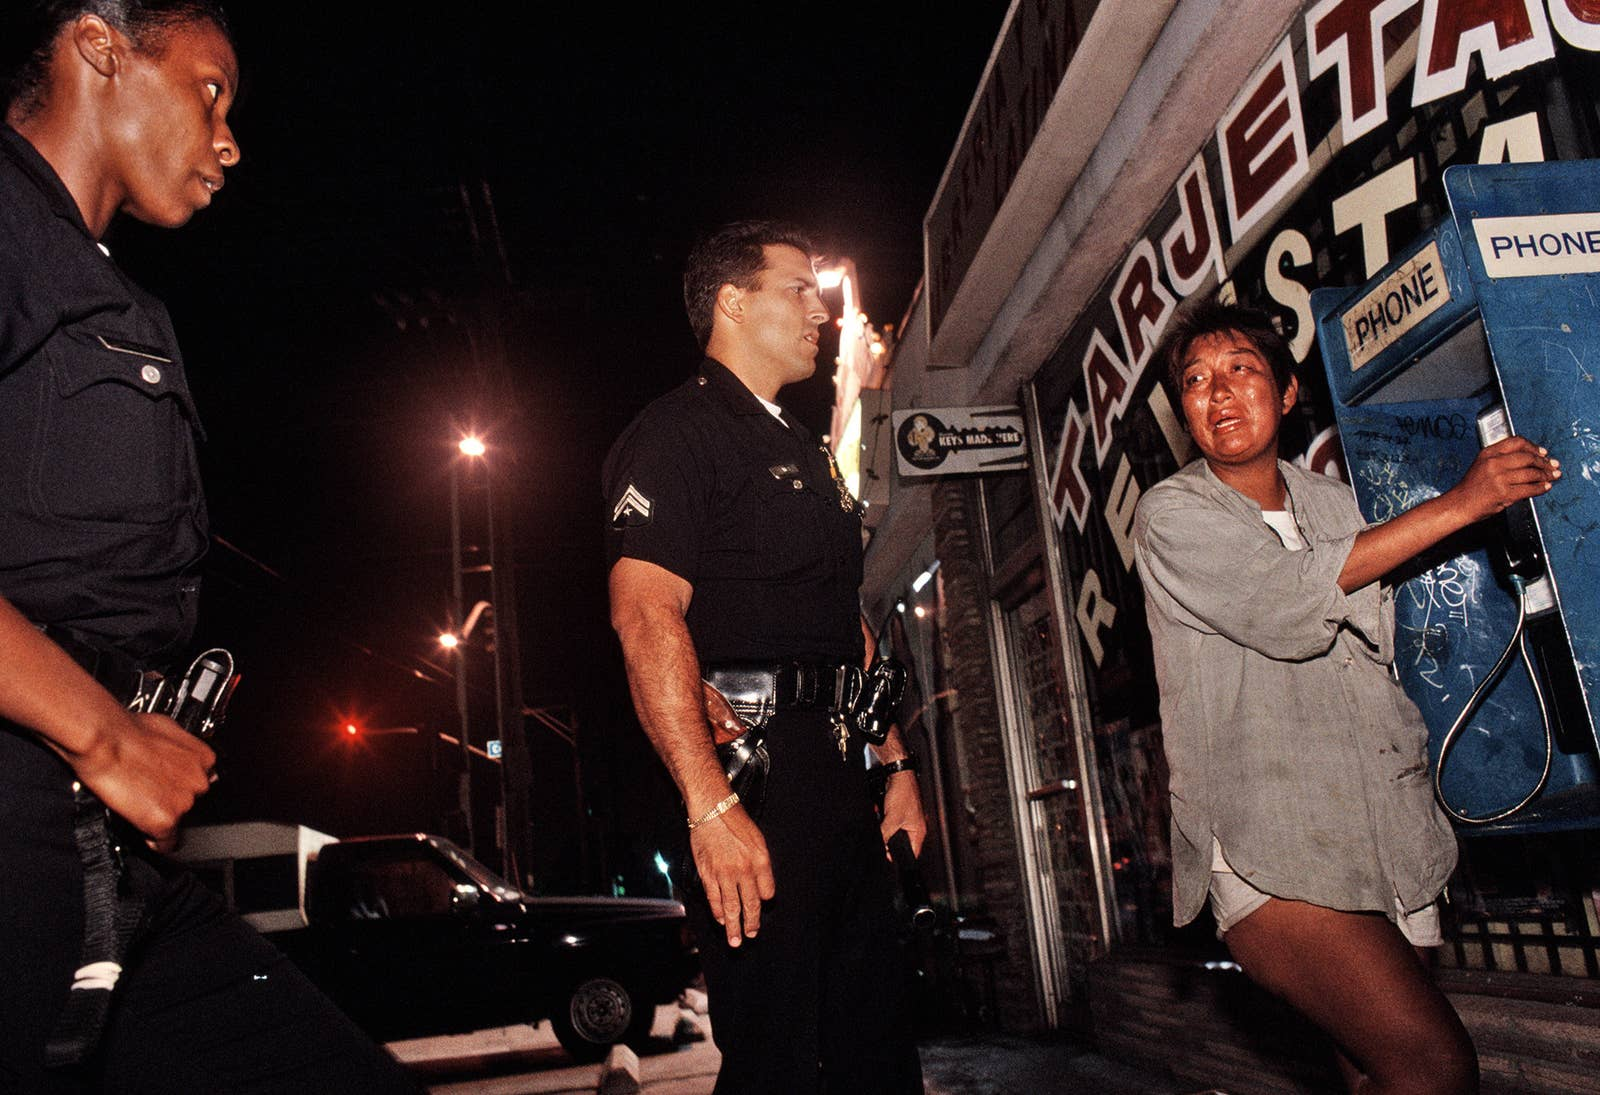 A woman crying at a phone booth while two cops talk with her